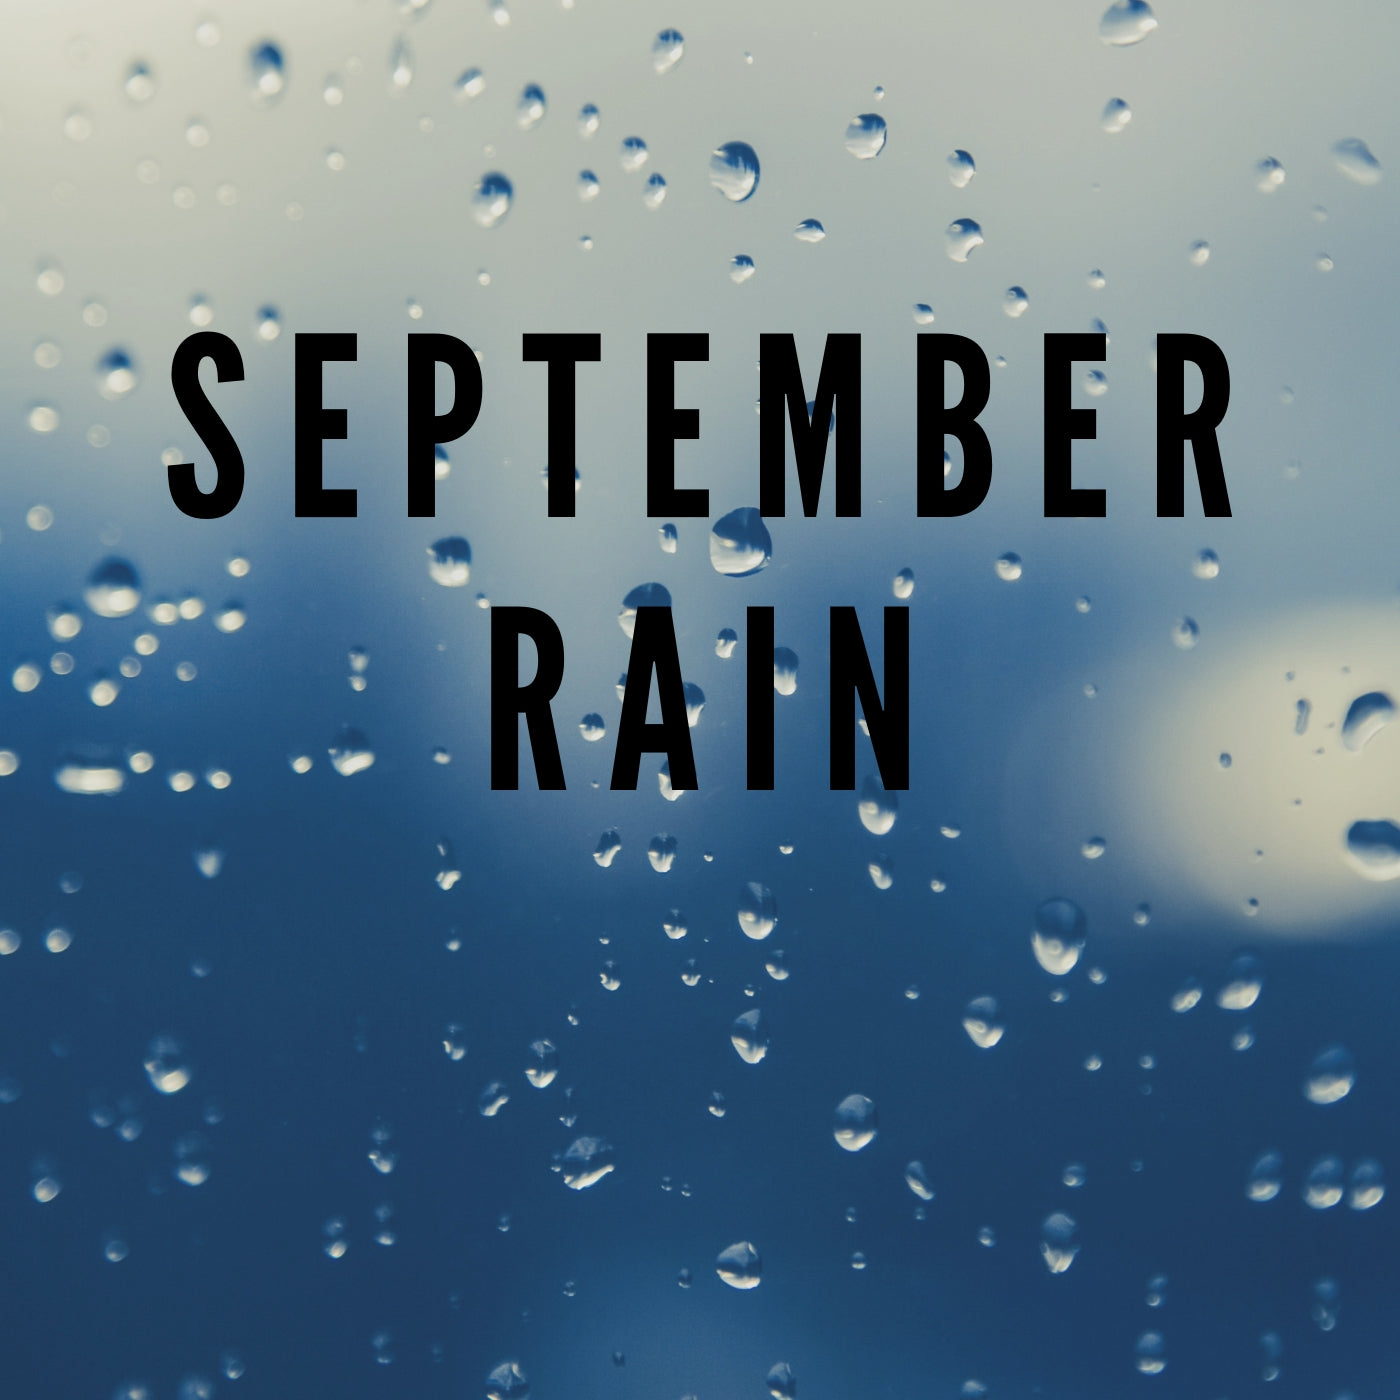 A love song reflecting a man's sorrow missing his true love, and their memories of love in the September Rain.